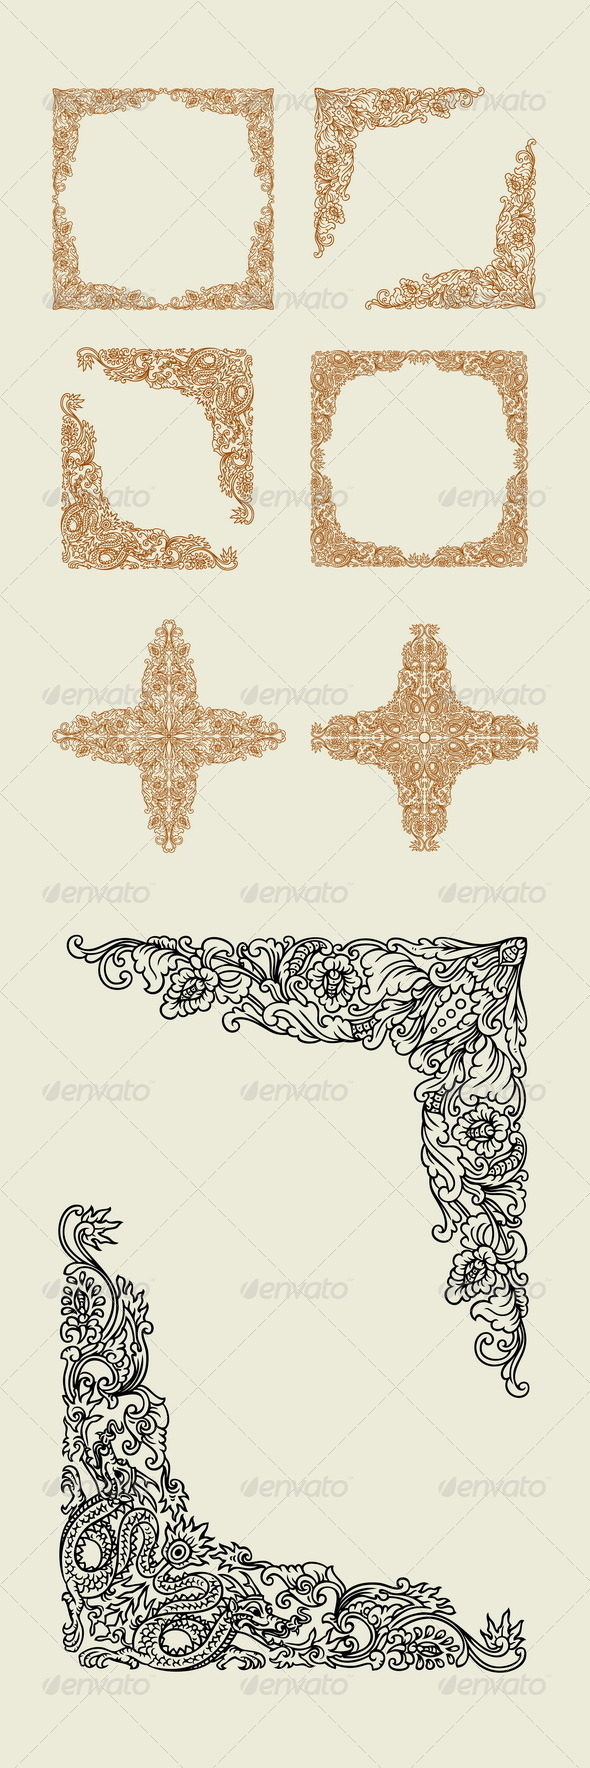 GraphicRiver Dragon and Floral Decoration 7954368